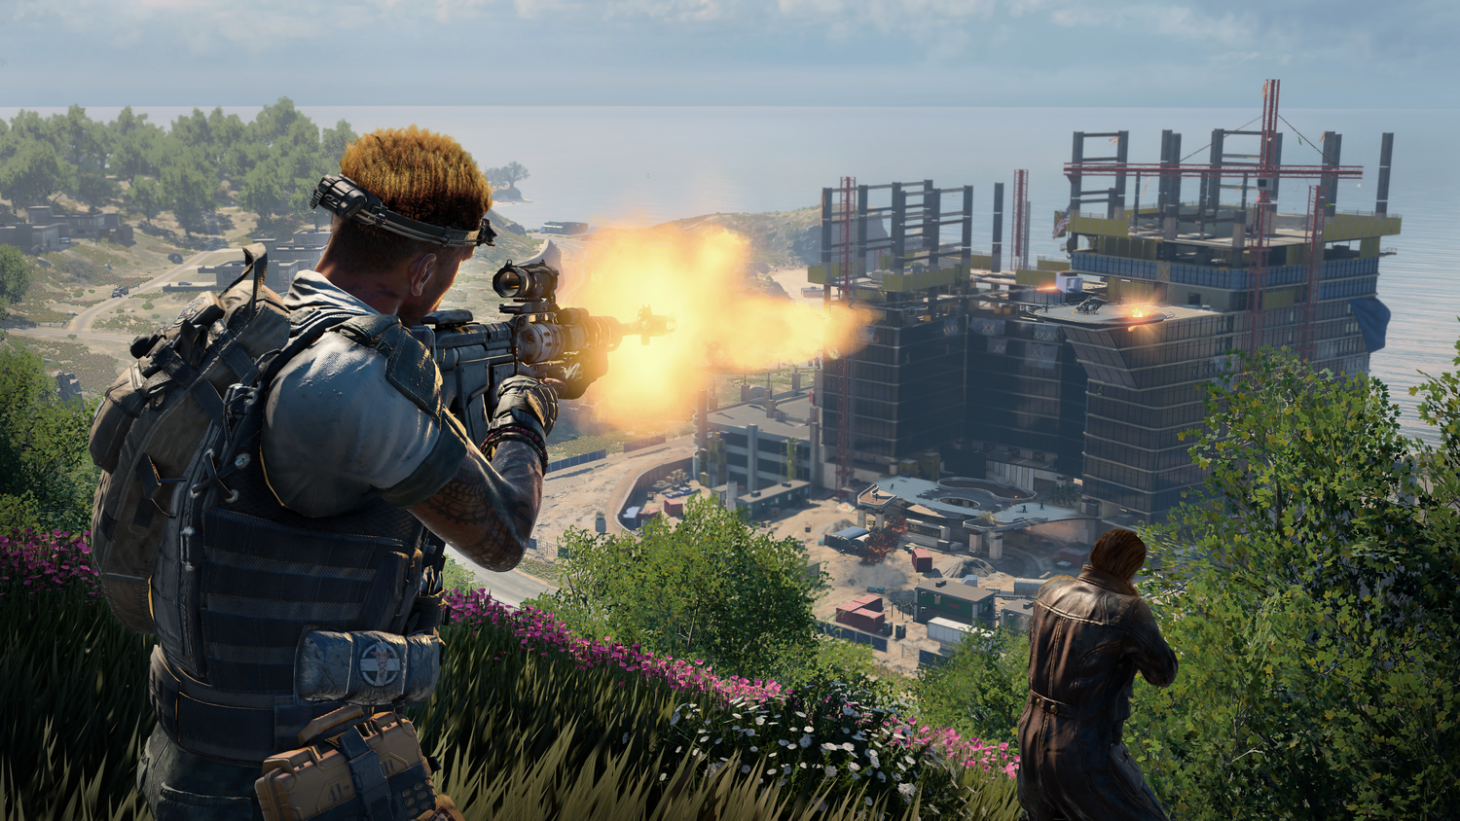 Blackout is COD's standout offering this year